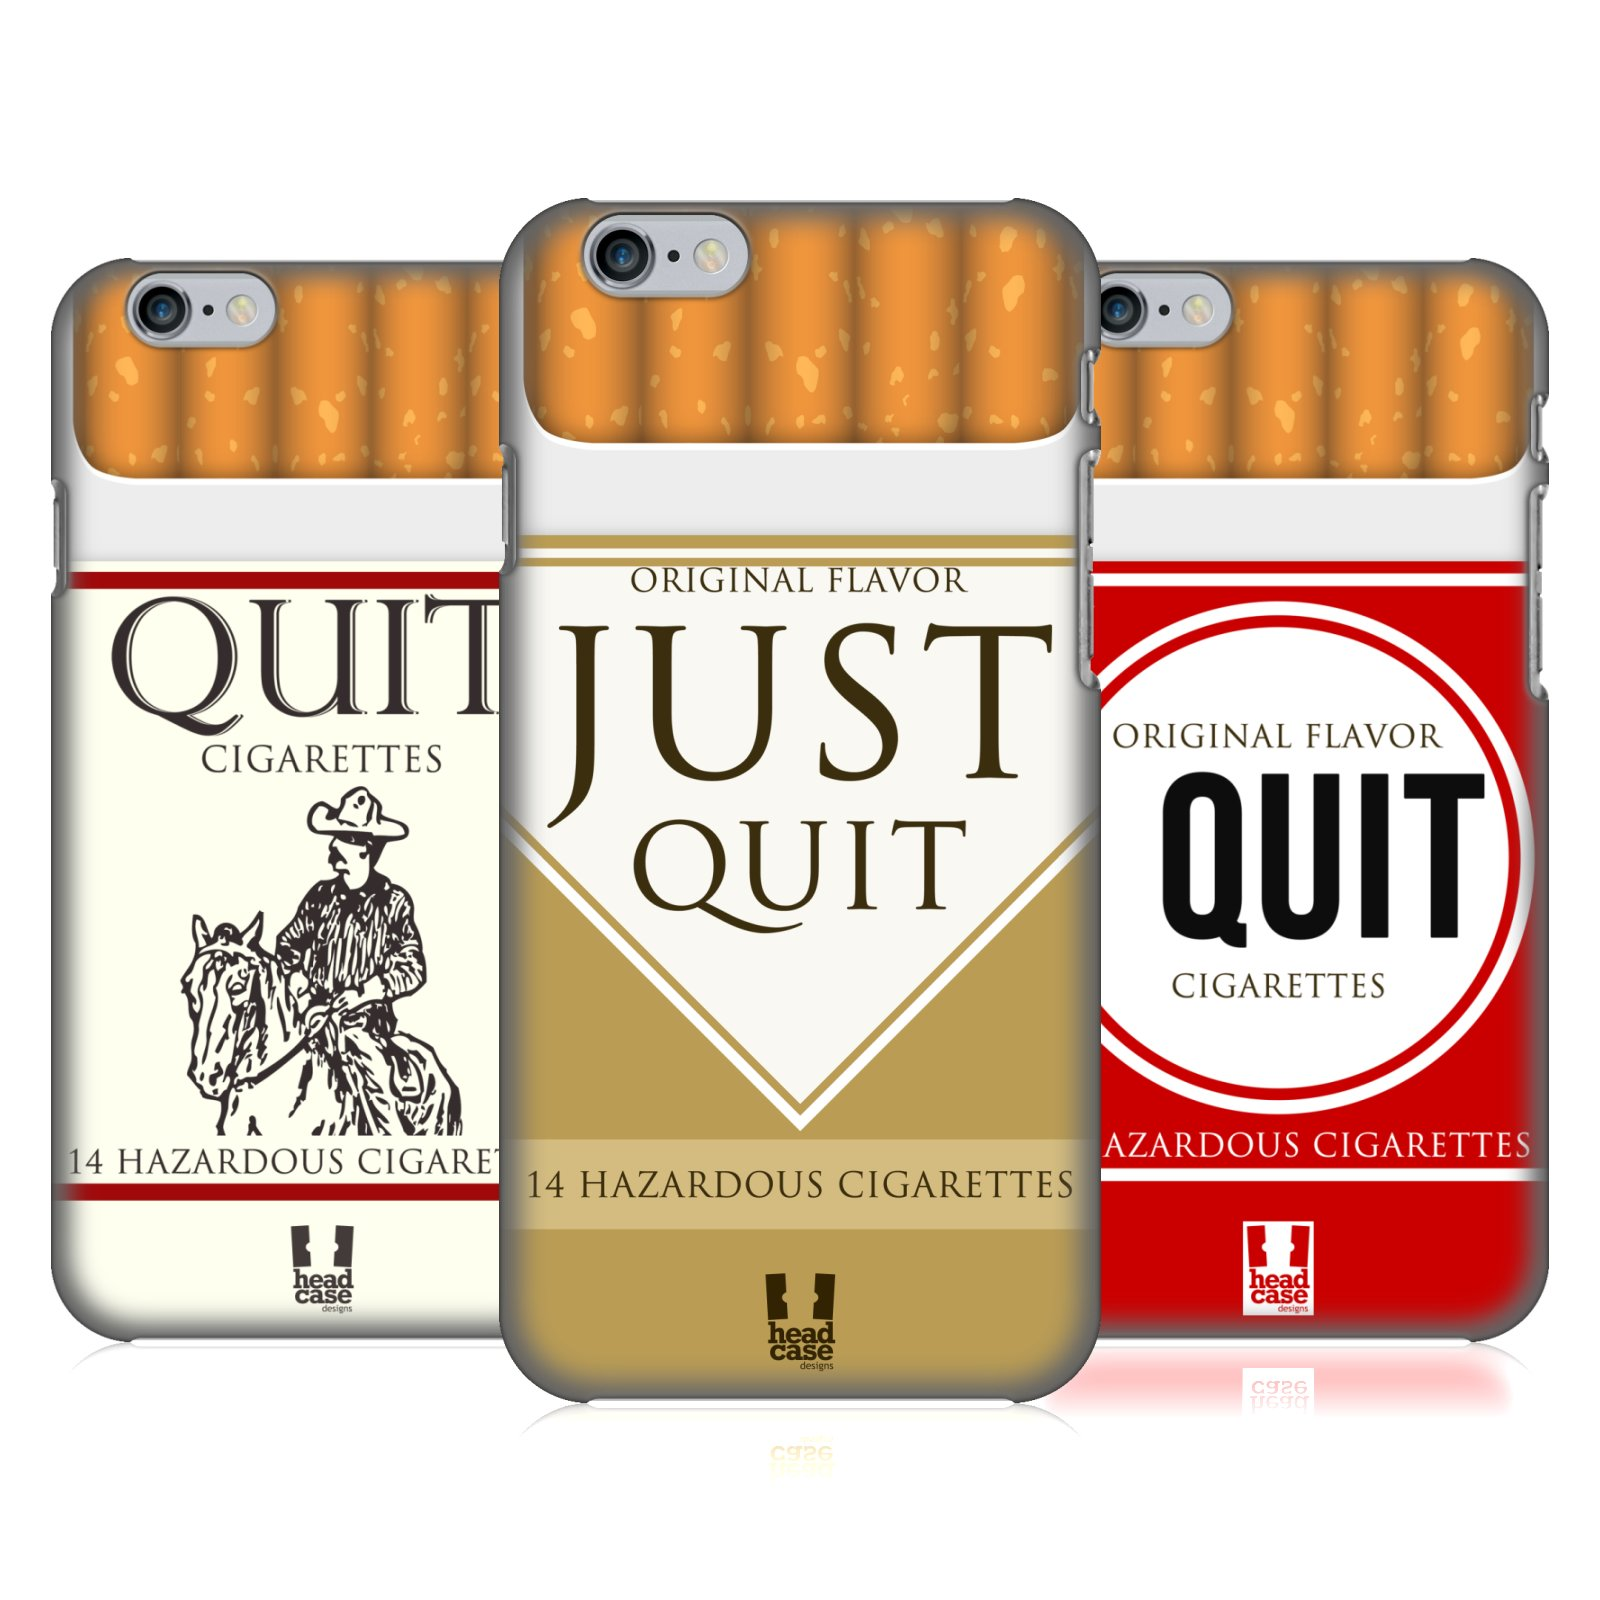 Cigarette Pack Inspired